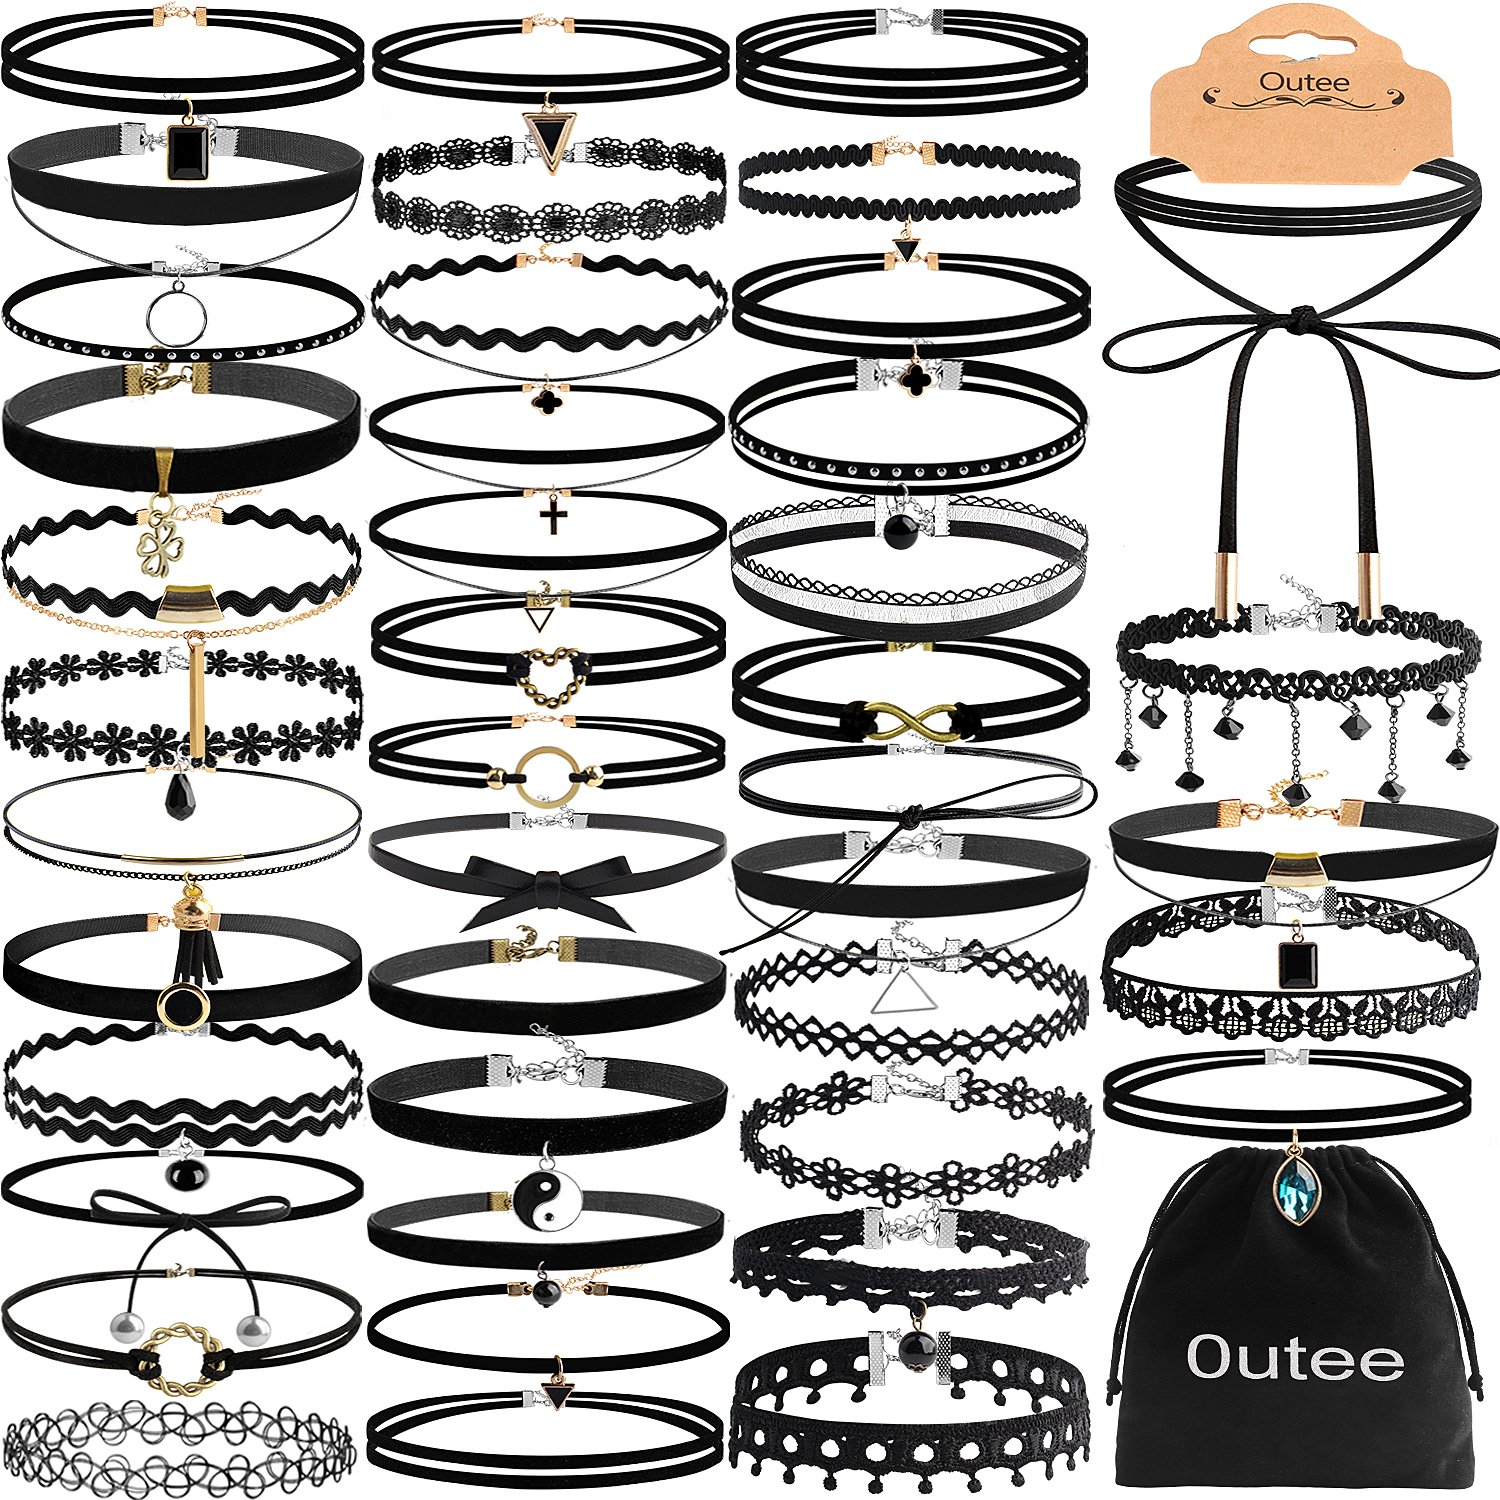 Choker Sets, Outee 55 Pcs Black Choker Necklace Set 2018 New Design Lace Choker Stretch Tattoo Choker Velvet Set Tattoo Necklaces Lace Choker Tattoo Necklaces for Womens Girls CYM4005